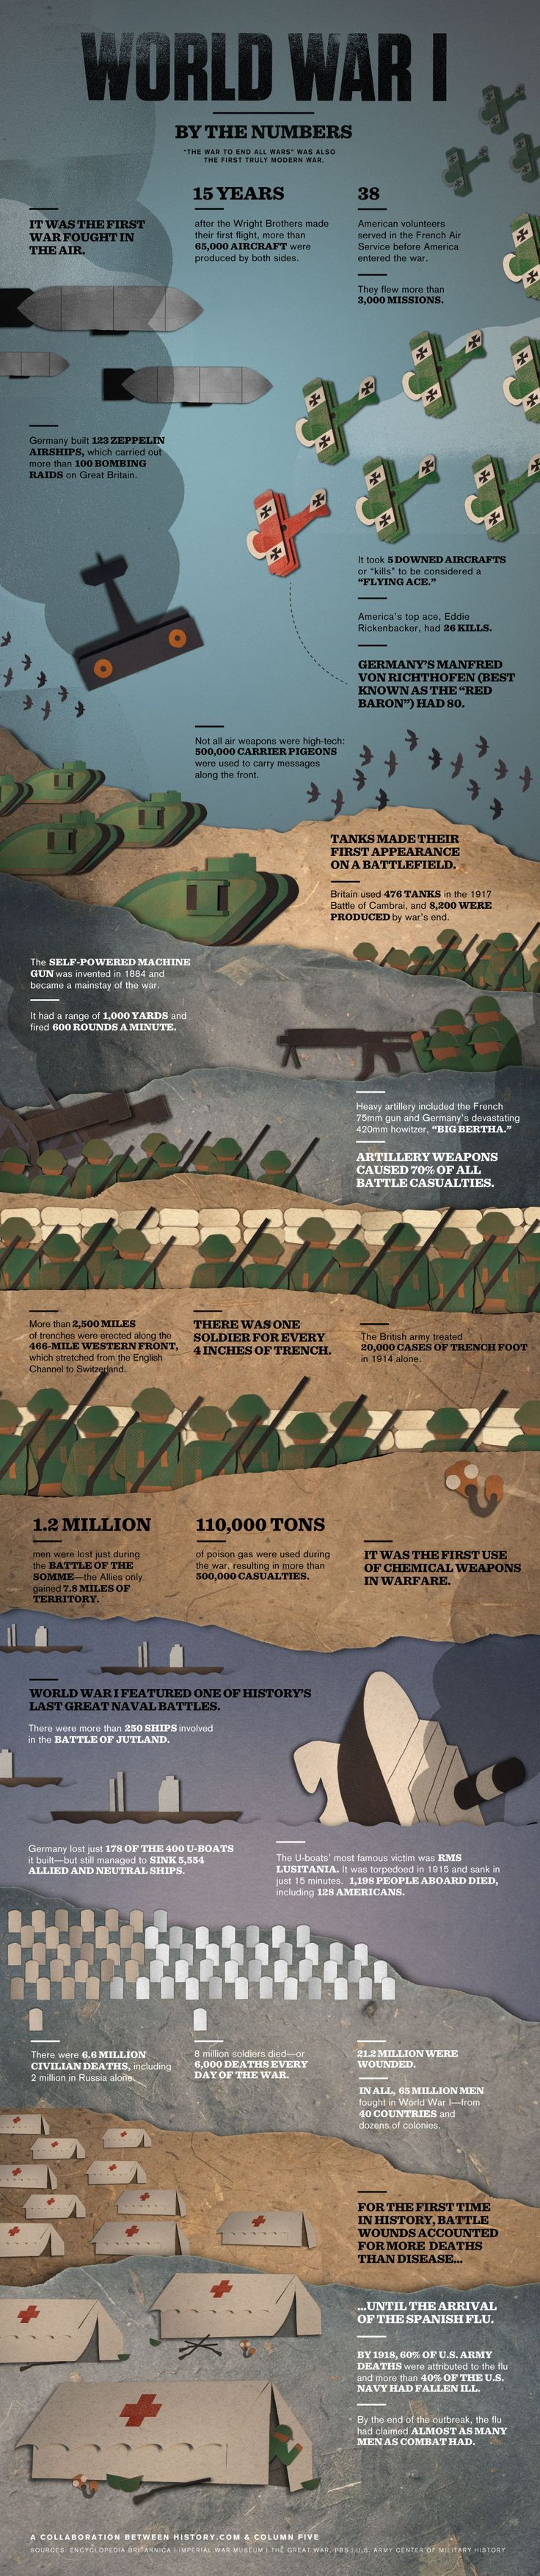 World War I by the Numbers - Infographic from the History Channel | #myfreedommyfamily